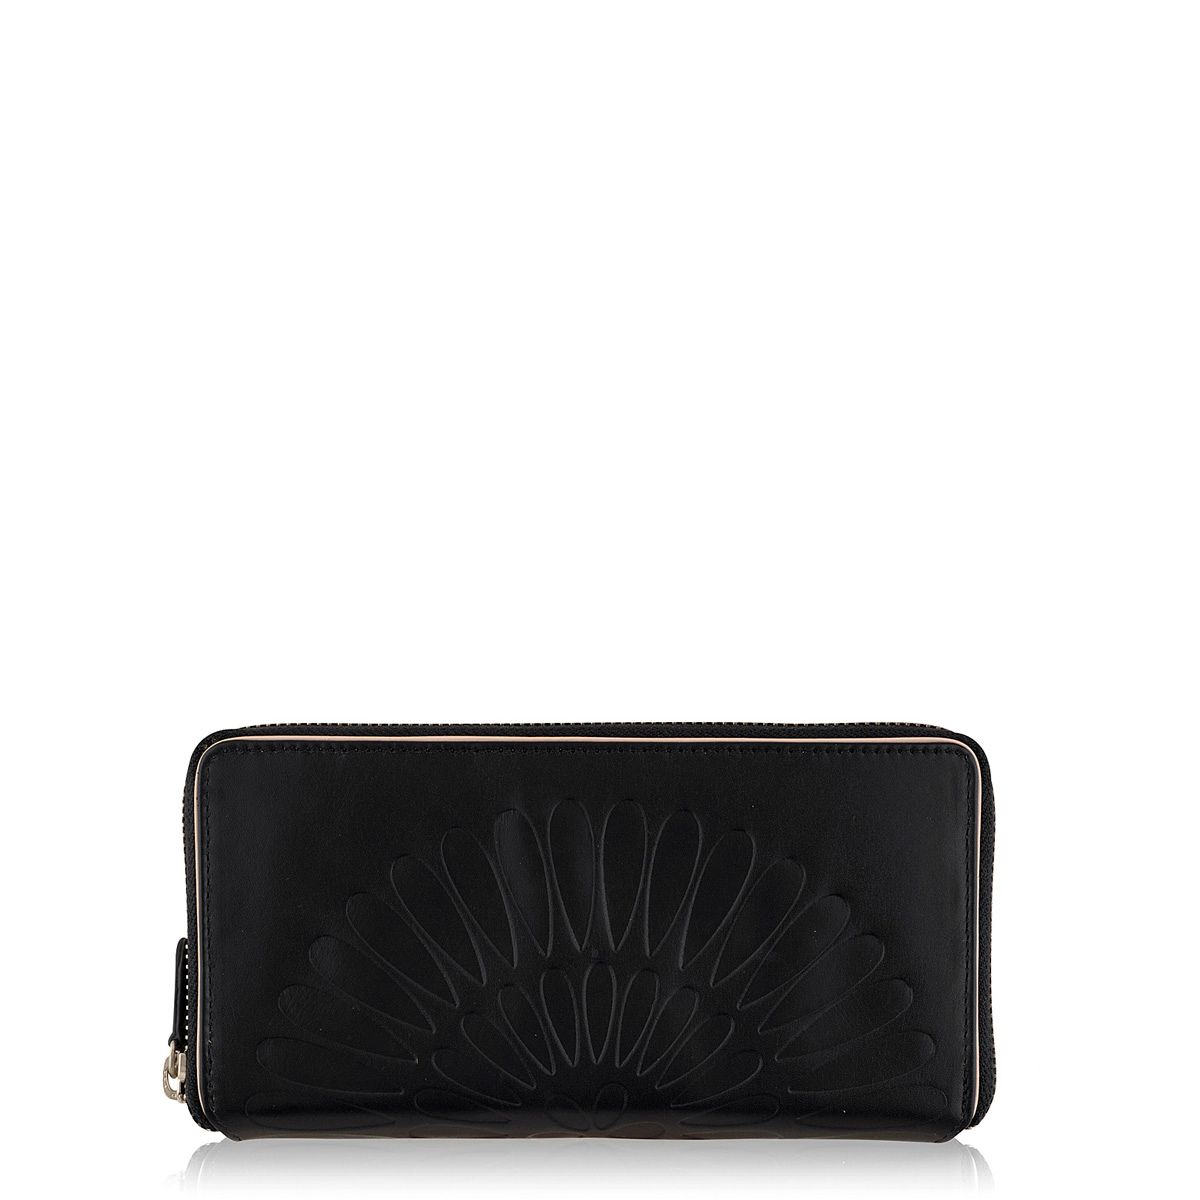 Finch black large zip around purse